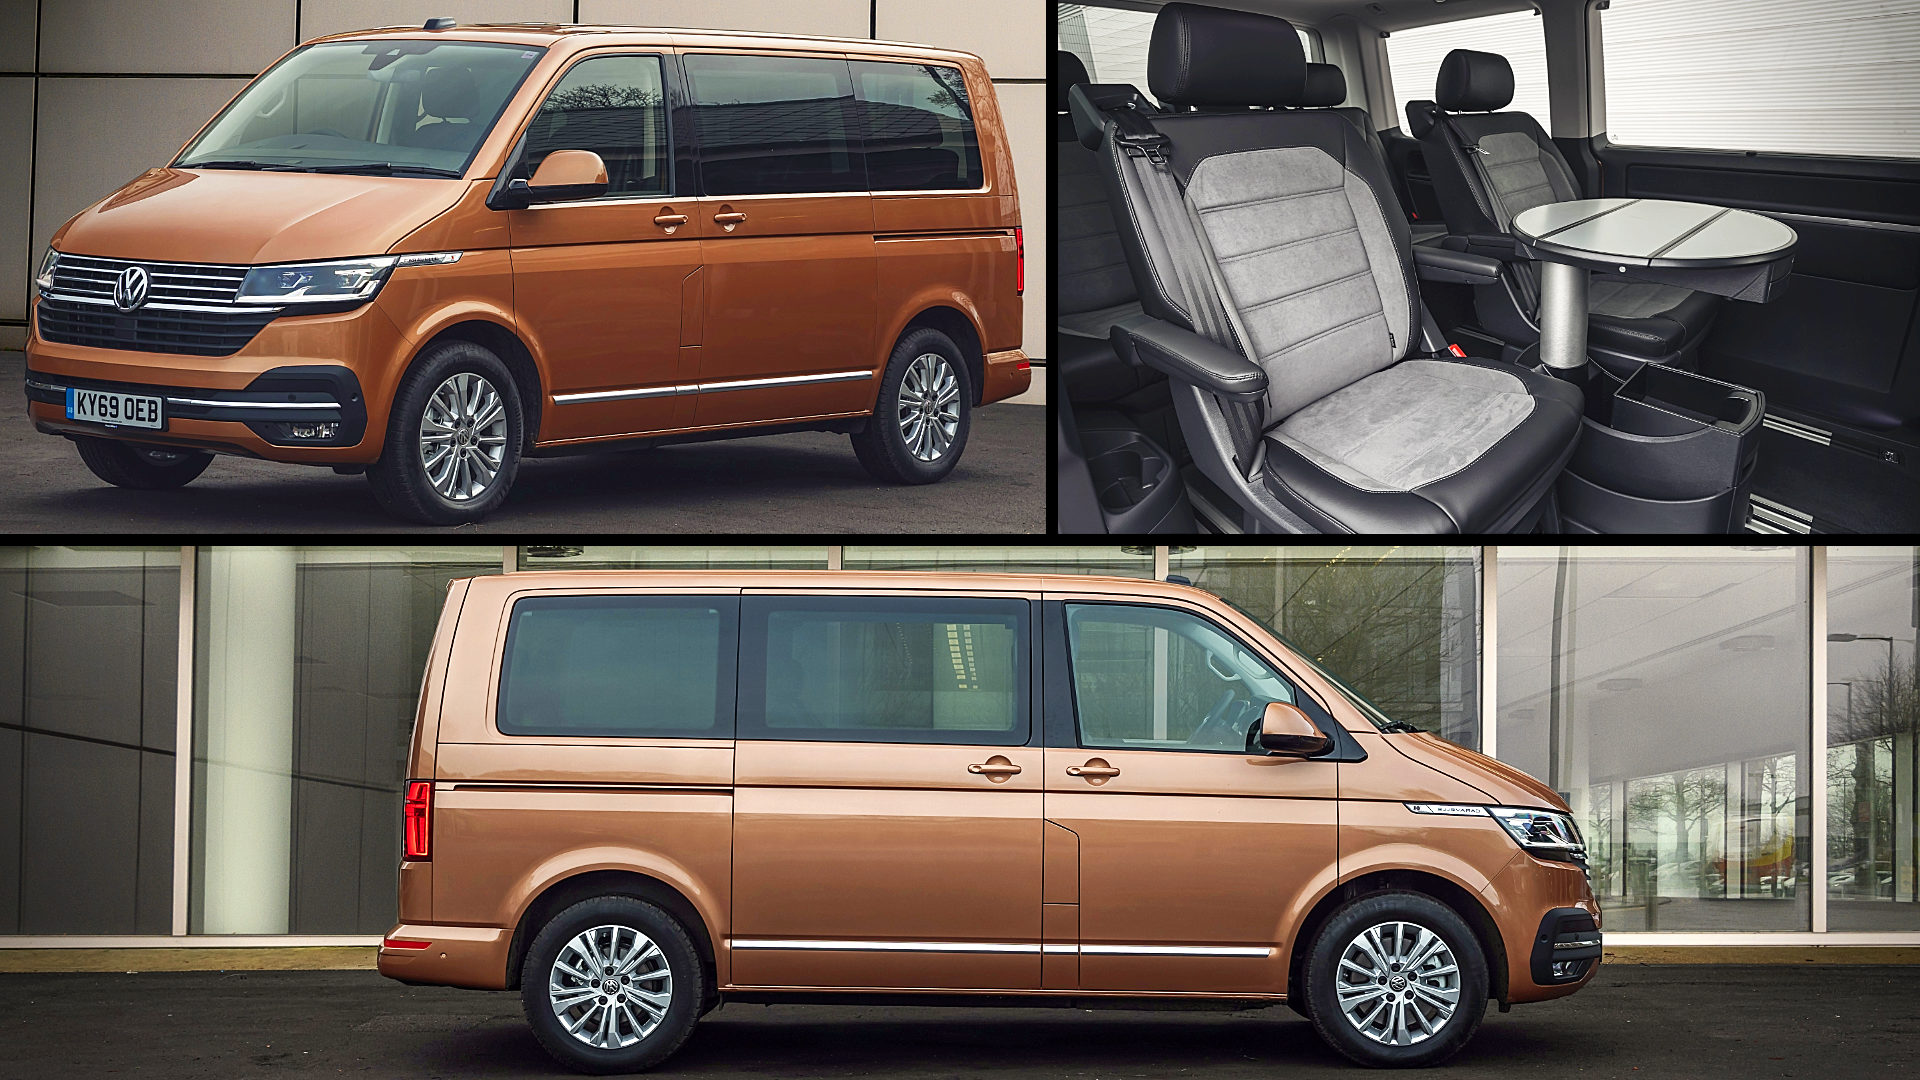 2020 Vw Caravelle UK